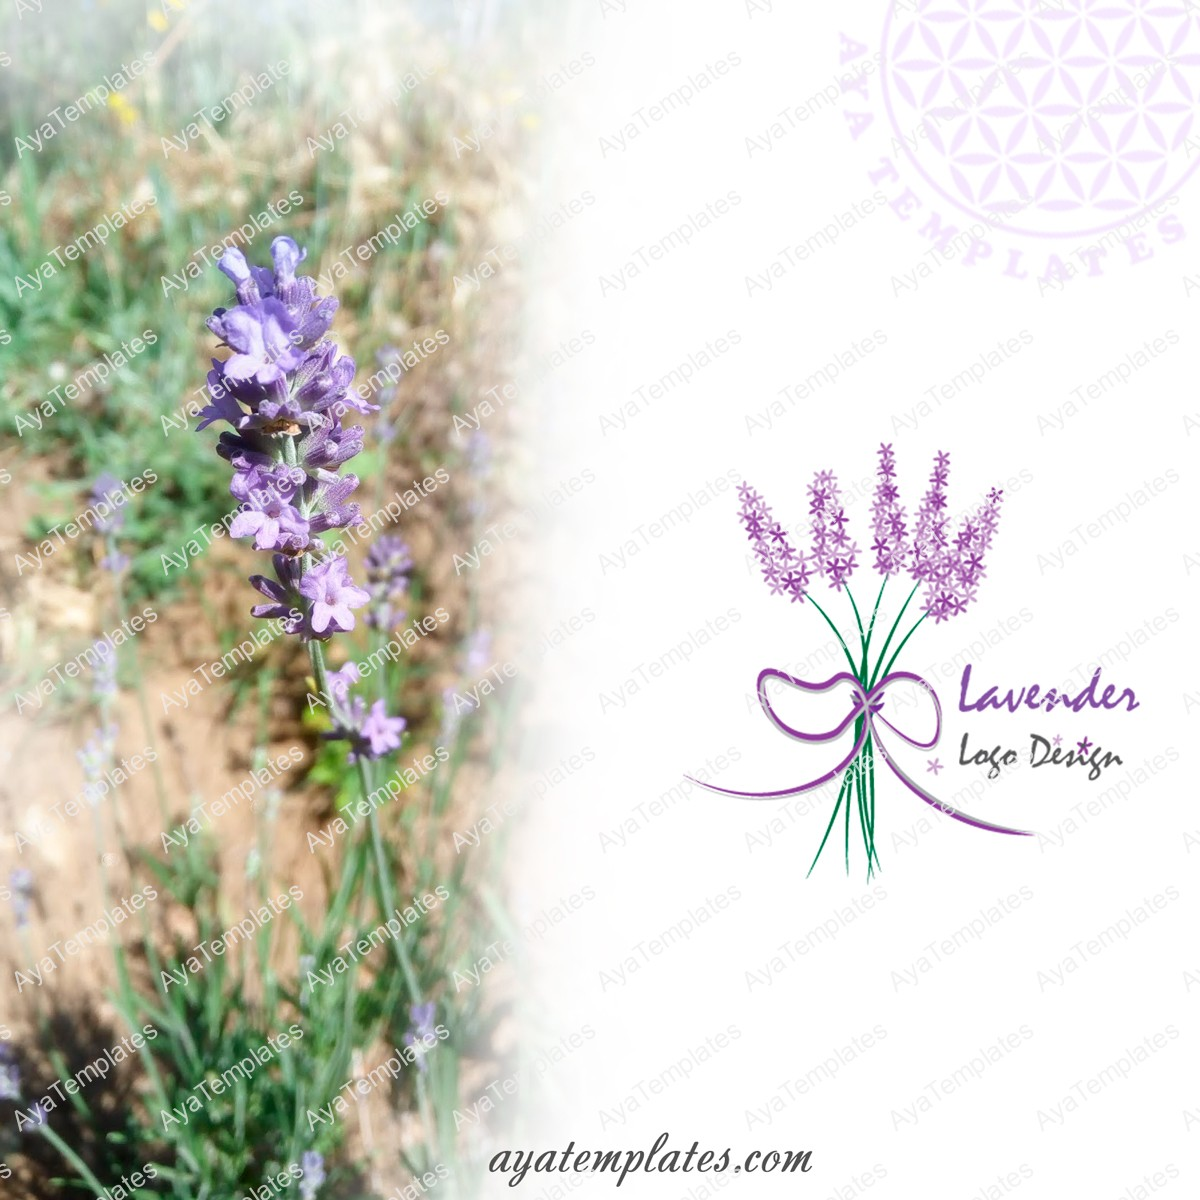 lavender-logo-design-and-brand-identity-collage-aya-templates